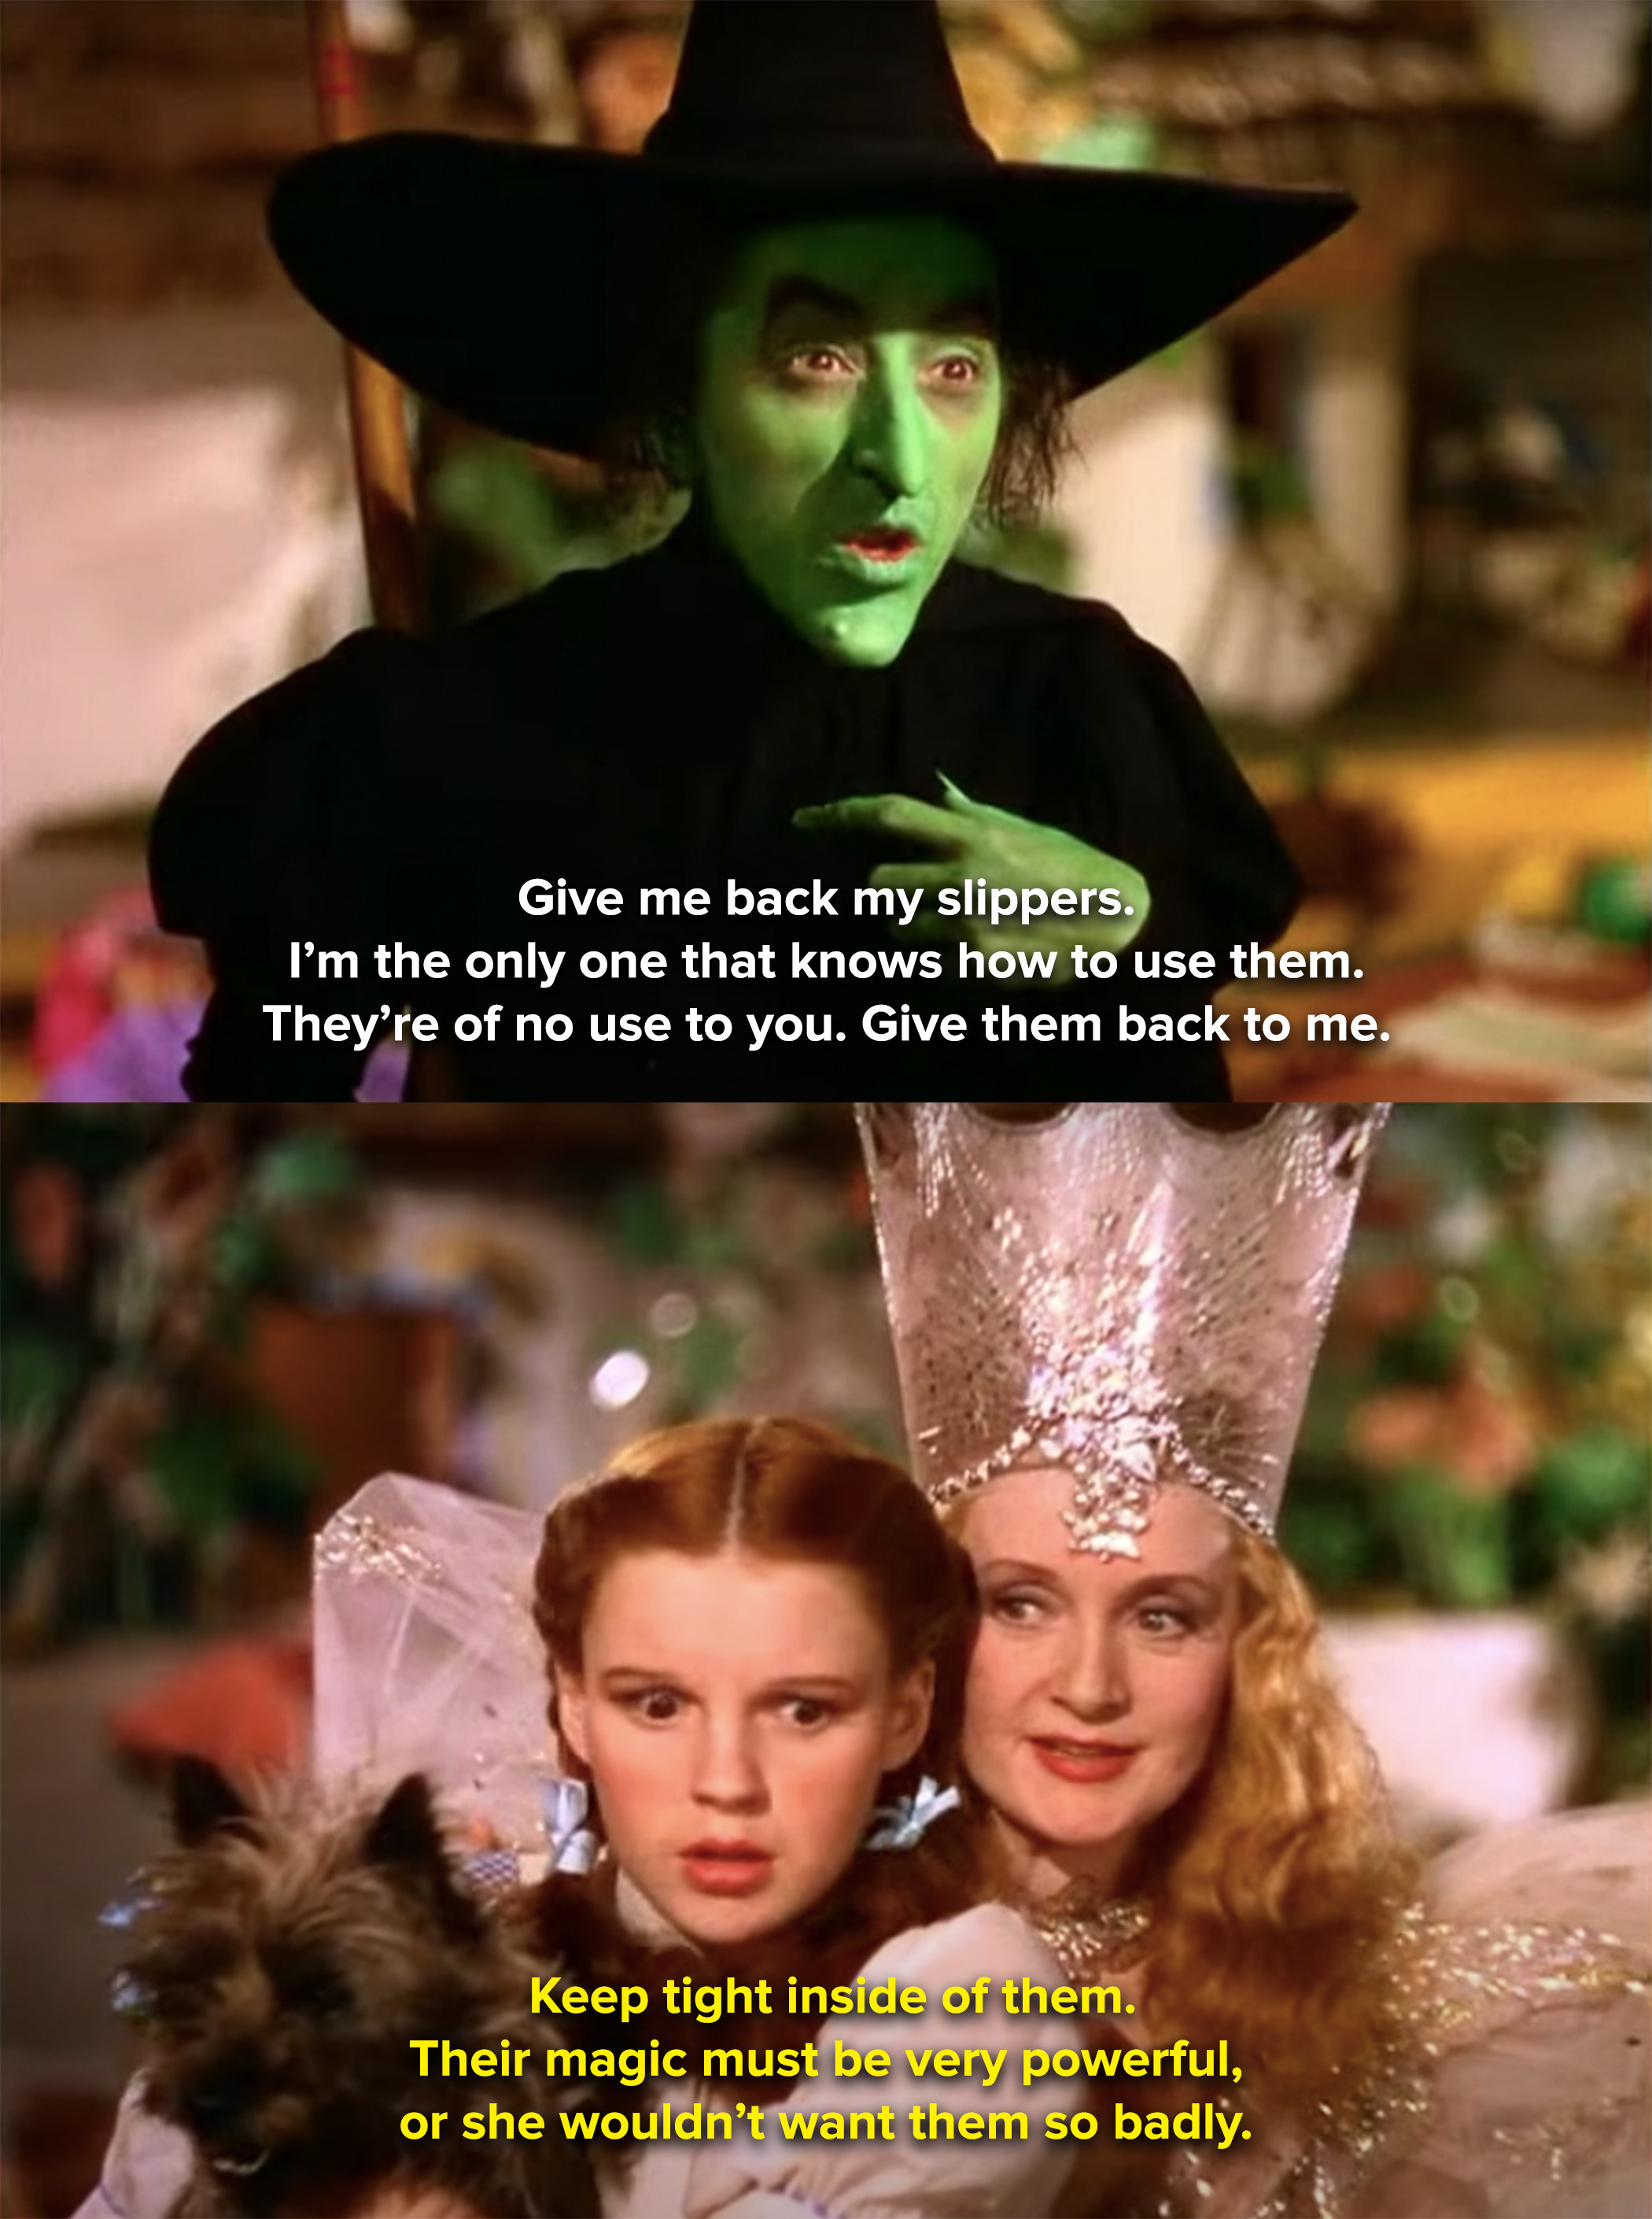 Glinda tells Dorothy not to give back the ruby slippers because they must be very powerful